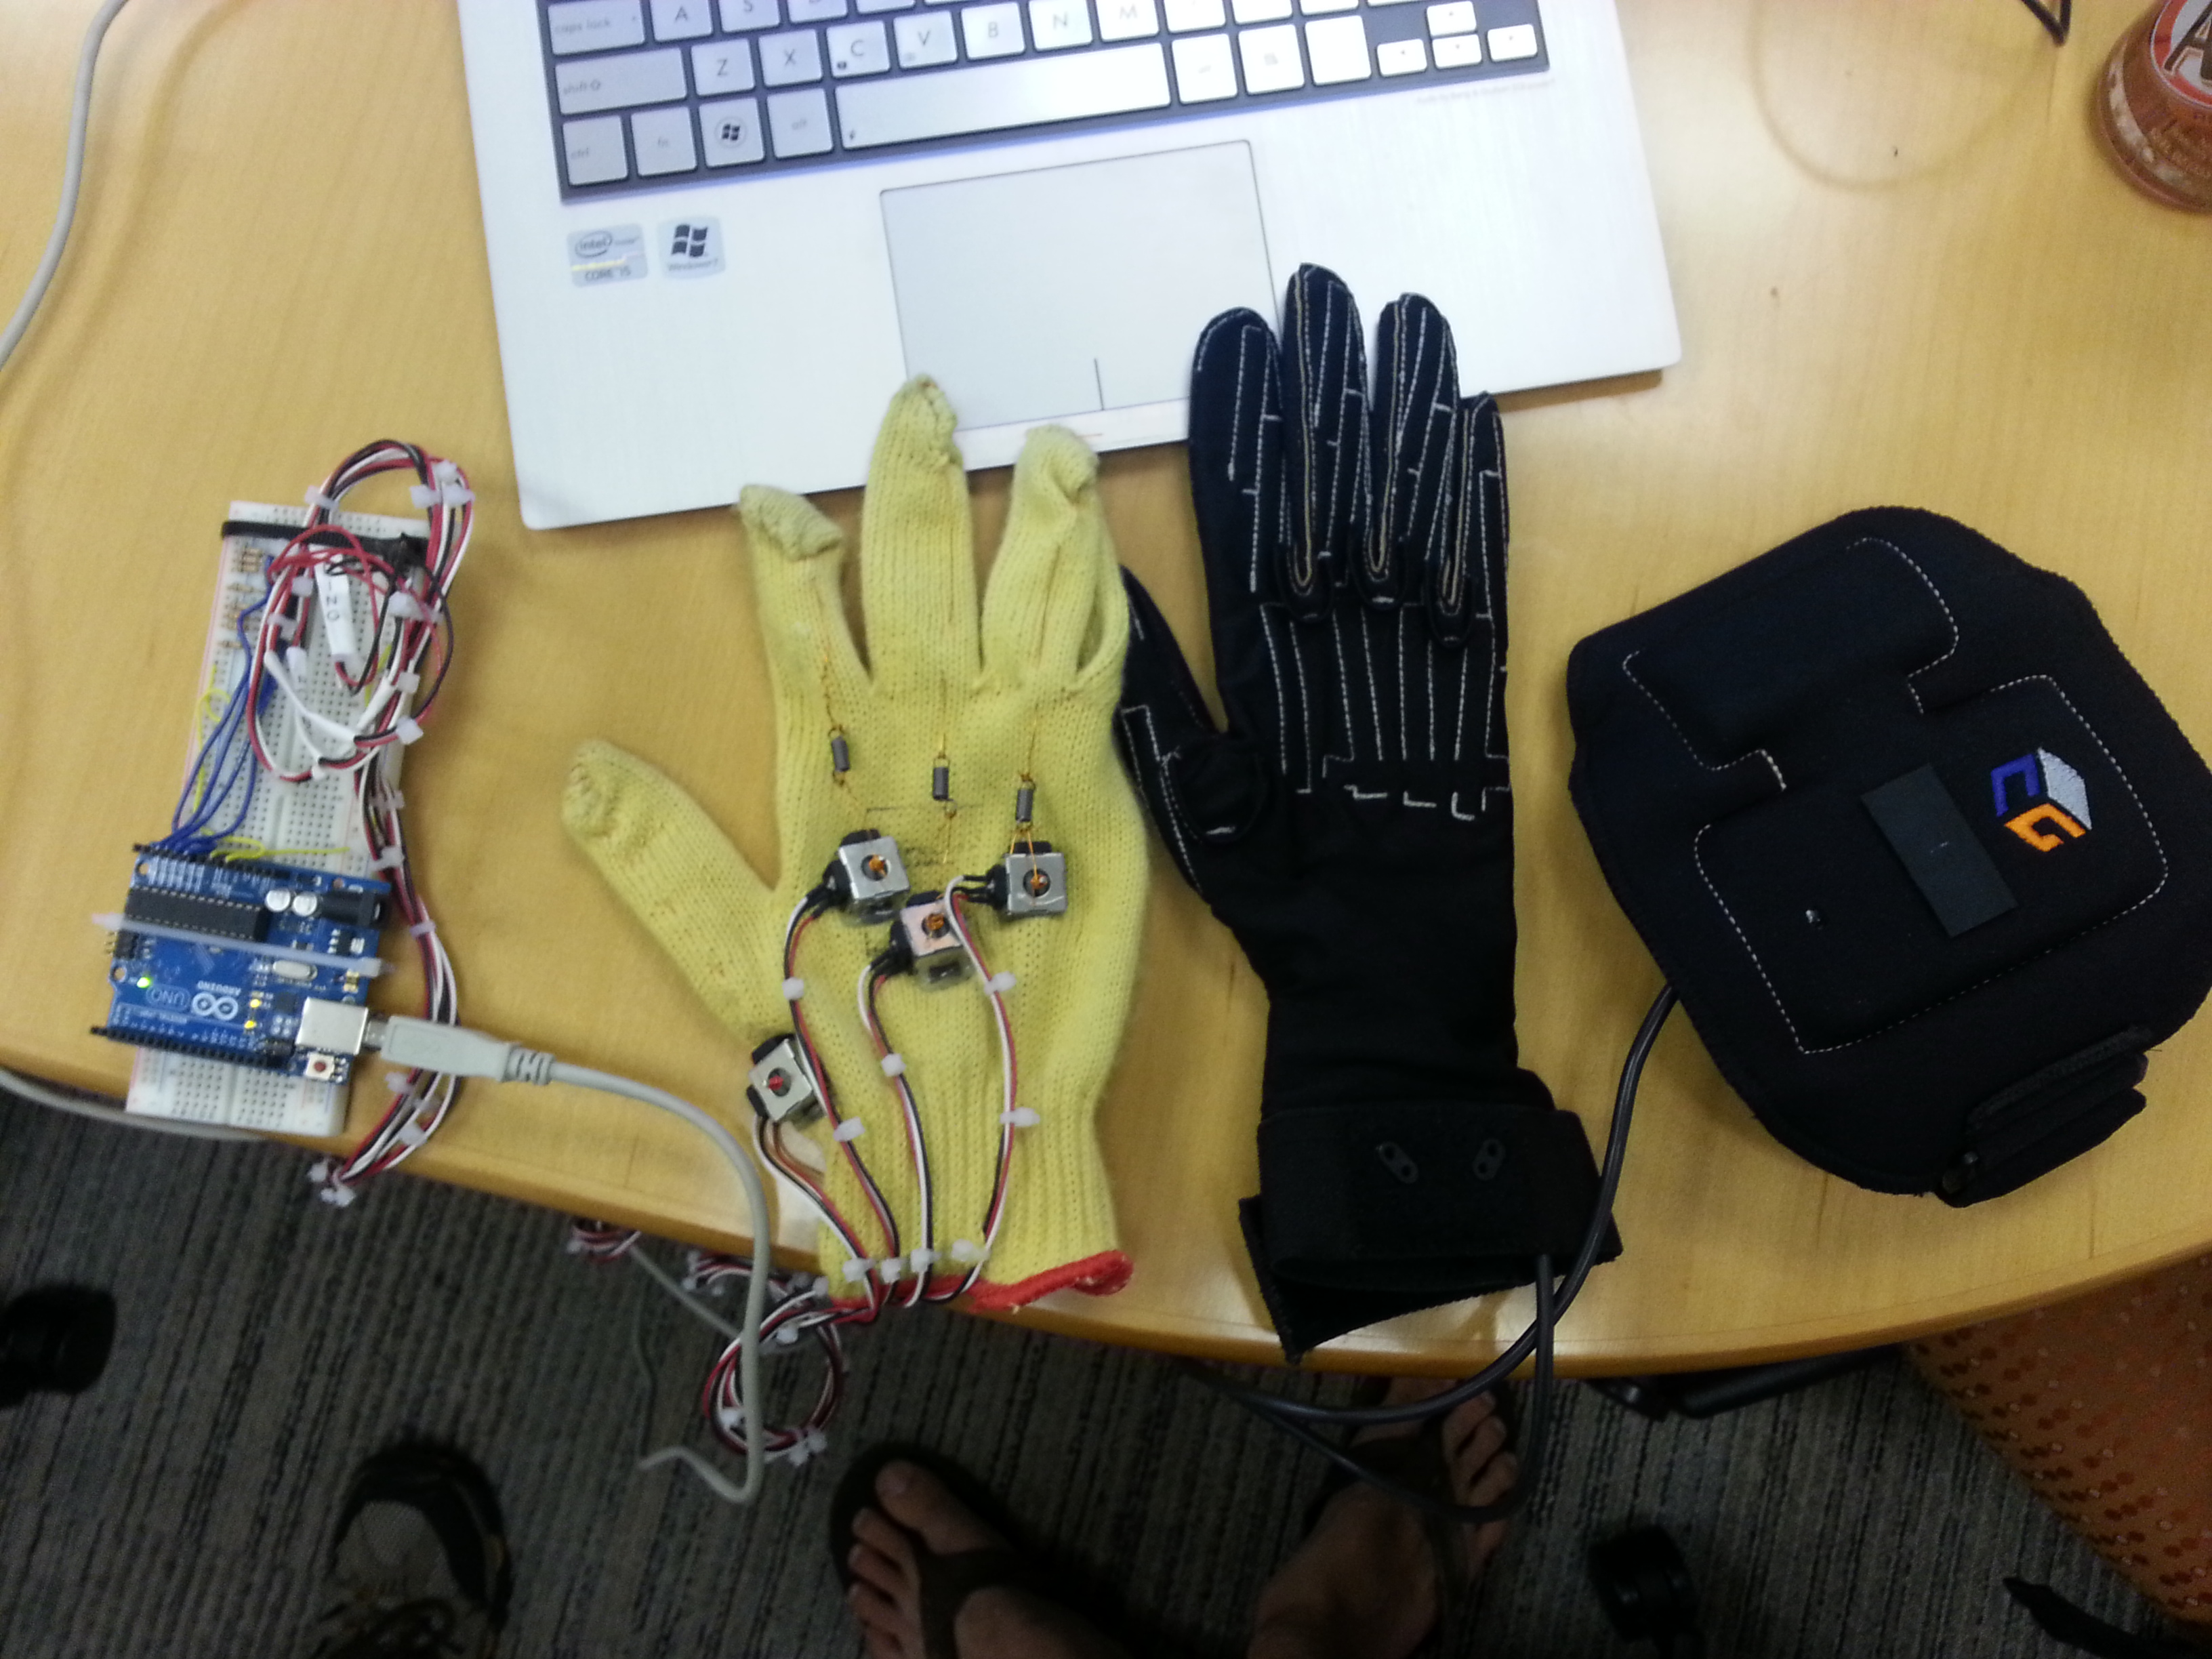 Picture of Build a $30k CyberGlove for $40 - Submitted by BayLab for the Instructables Sponsorship Program